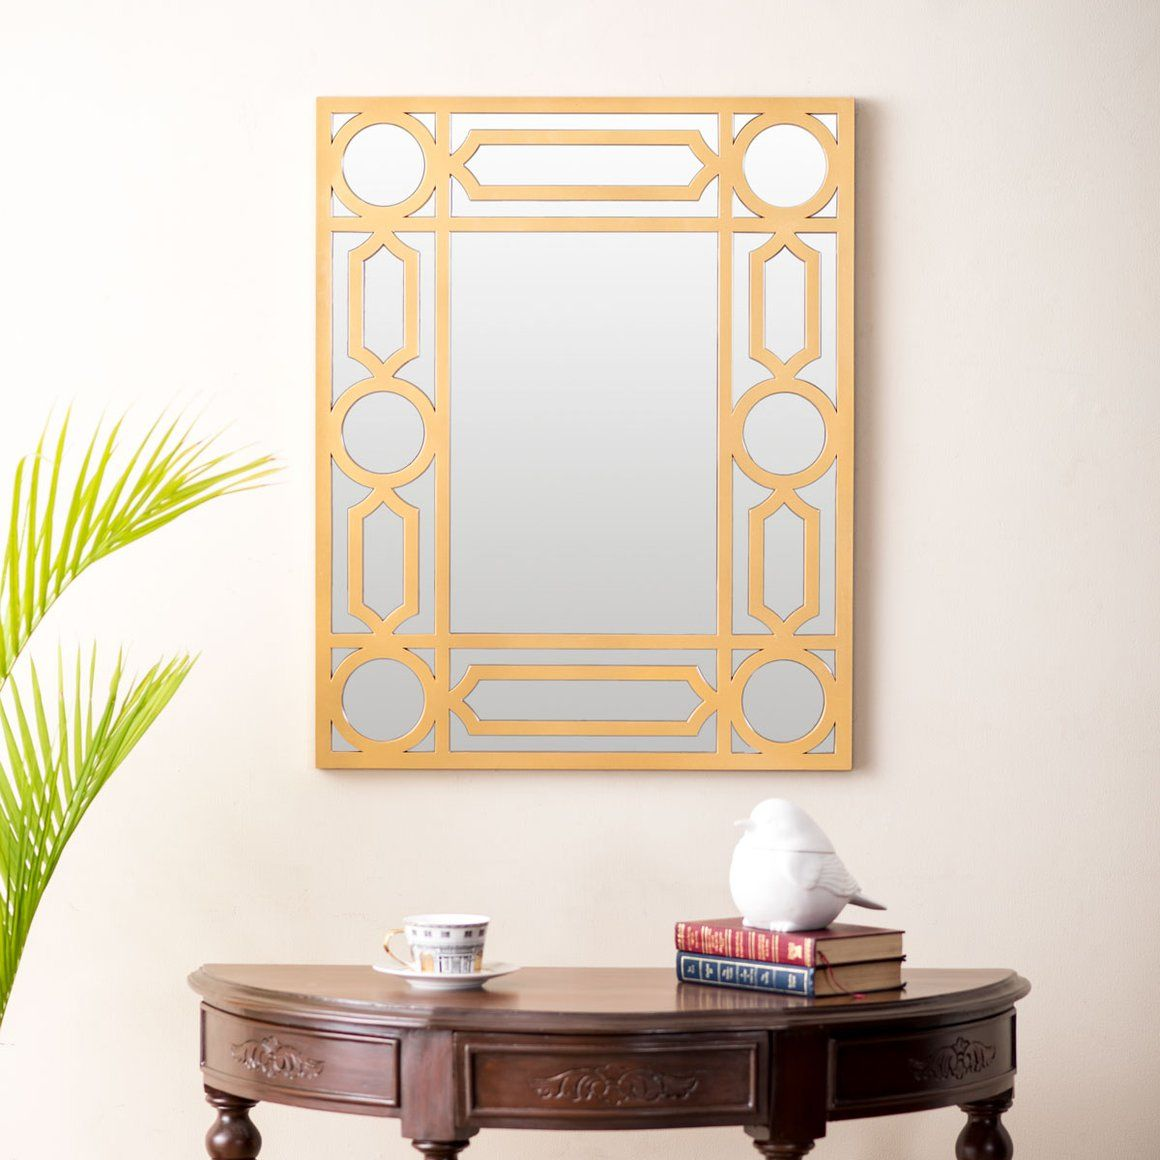 Wall Mirror Decor Buy Online Decorative Wall Mirror In India Thedecorkart Mirror Mirror Wall Decor Mirror Wall Living Room